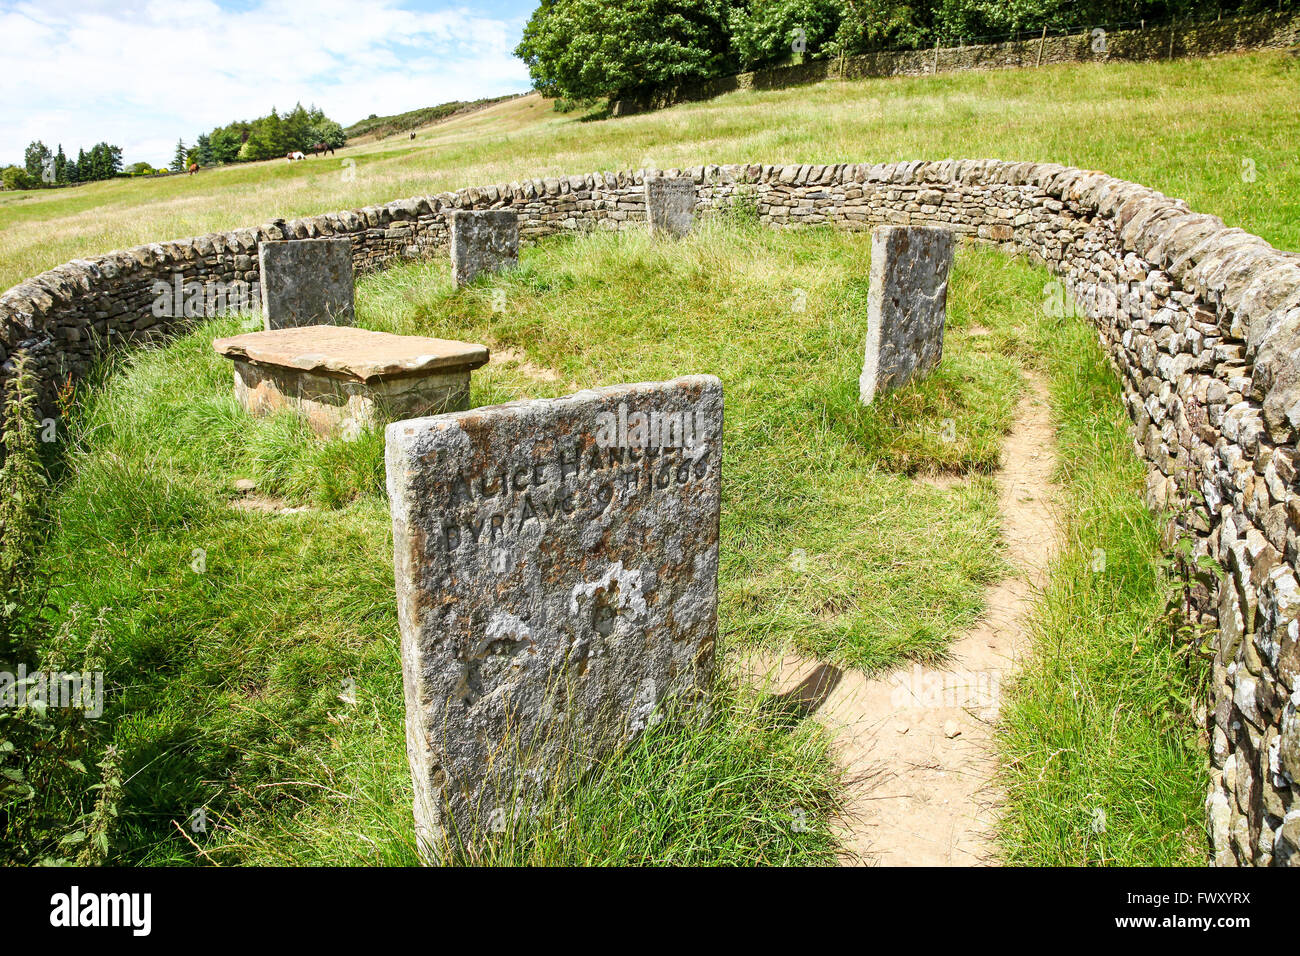 Riley Graves Eyam Derbyshire England UK PHOTO TAKEN FROM PUBLIC FOOTPATH - Stock Image